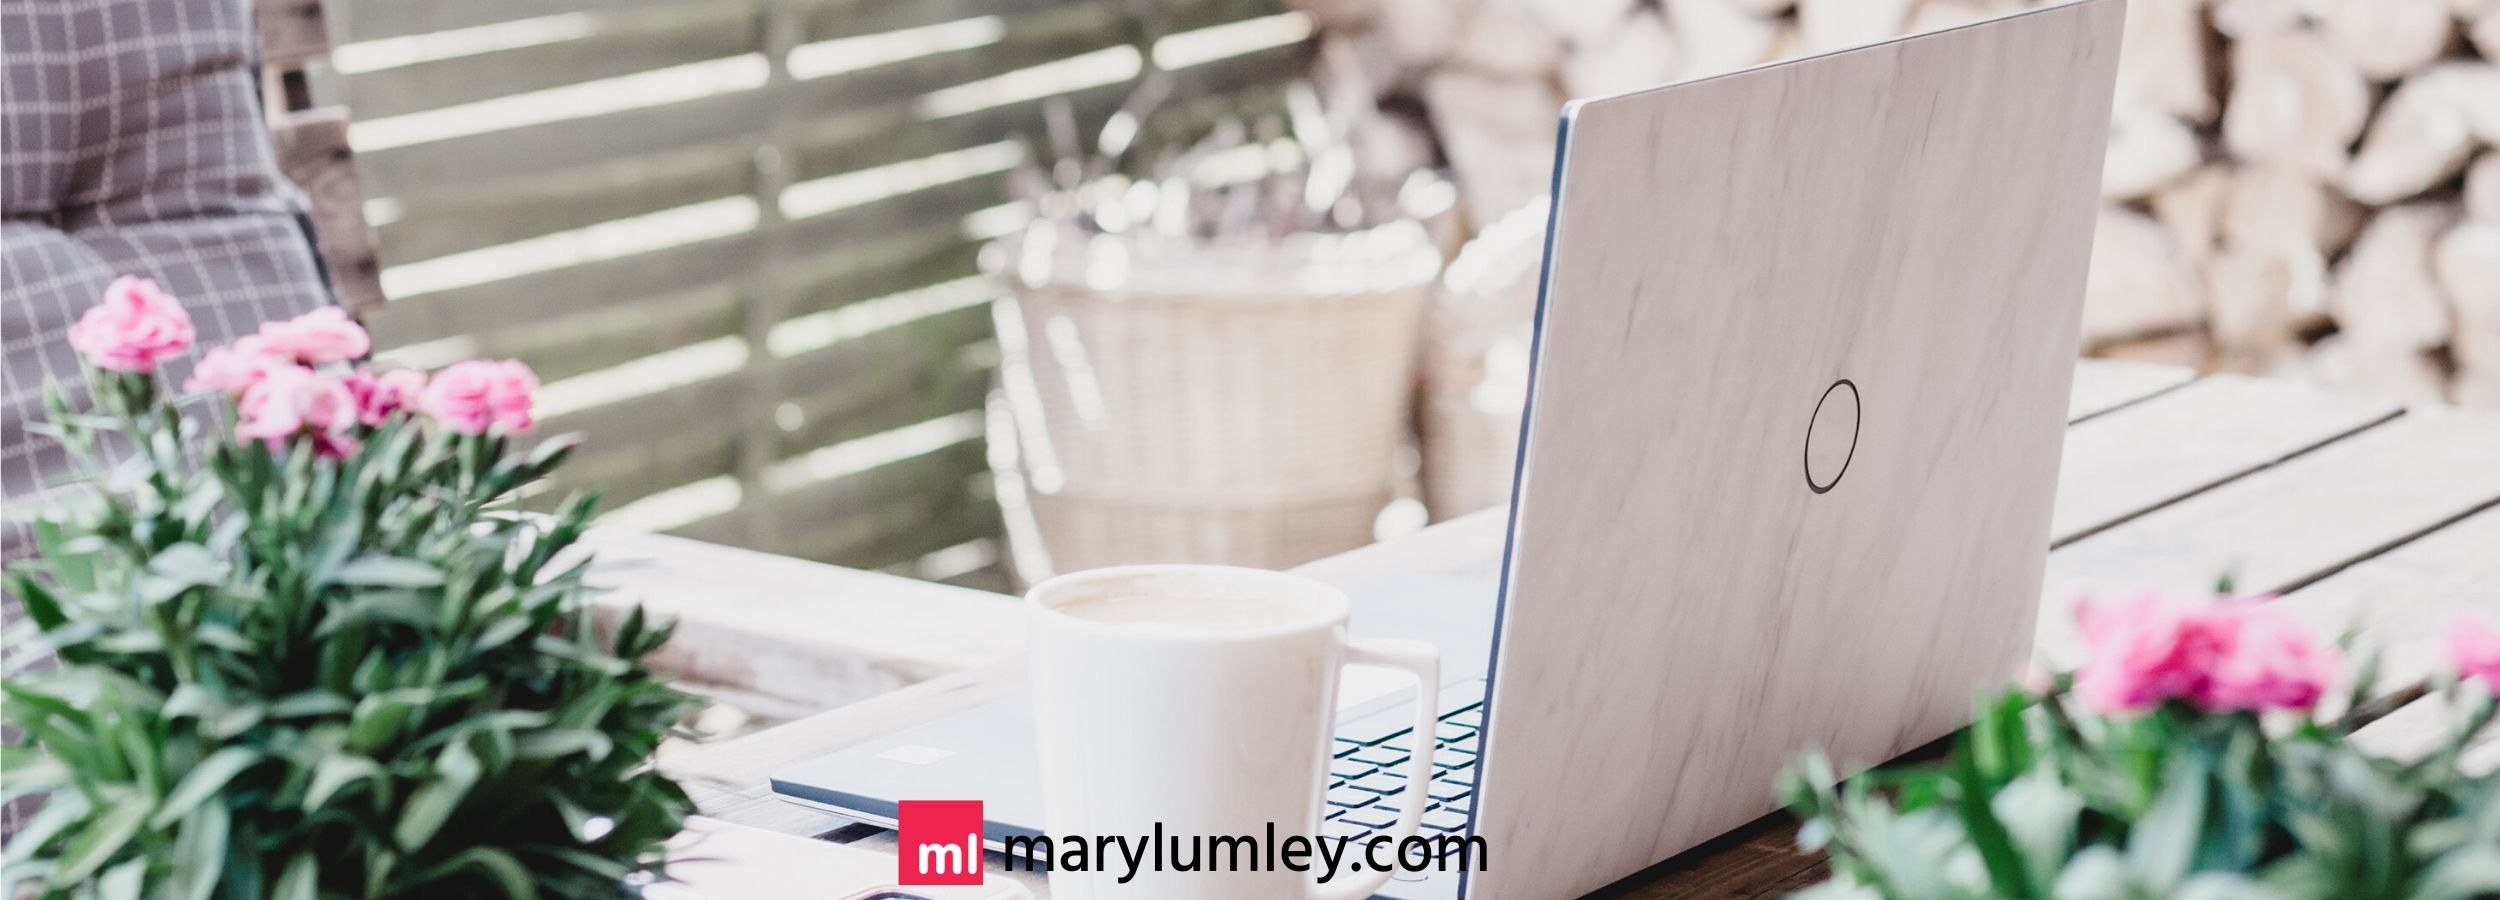 Monthly views on Pinterest are not important. What they mean and why you should stop worrying about the average number of monthly viewers on Pinterest. Look at these figures instead! #pinterestmarketing #pinterestforbusiness #pinteresttips #marylumley